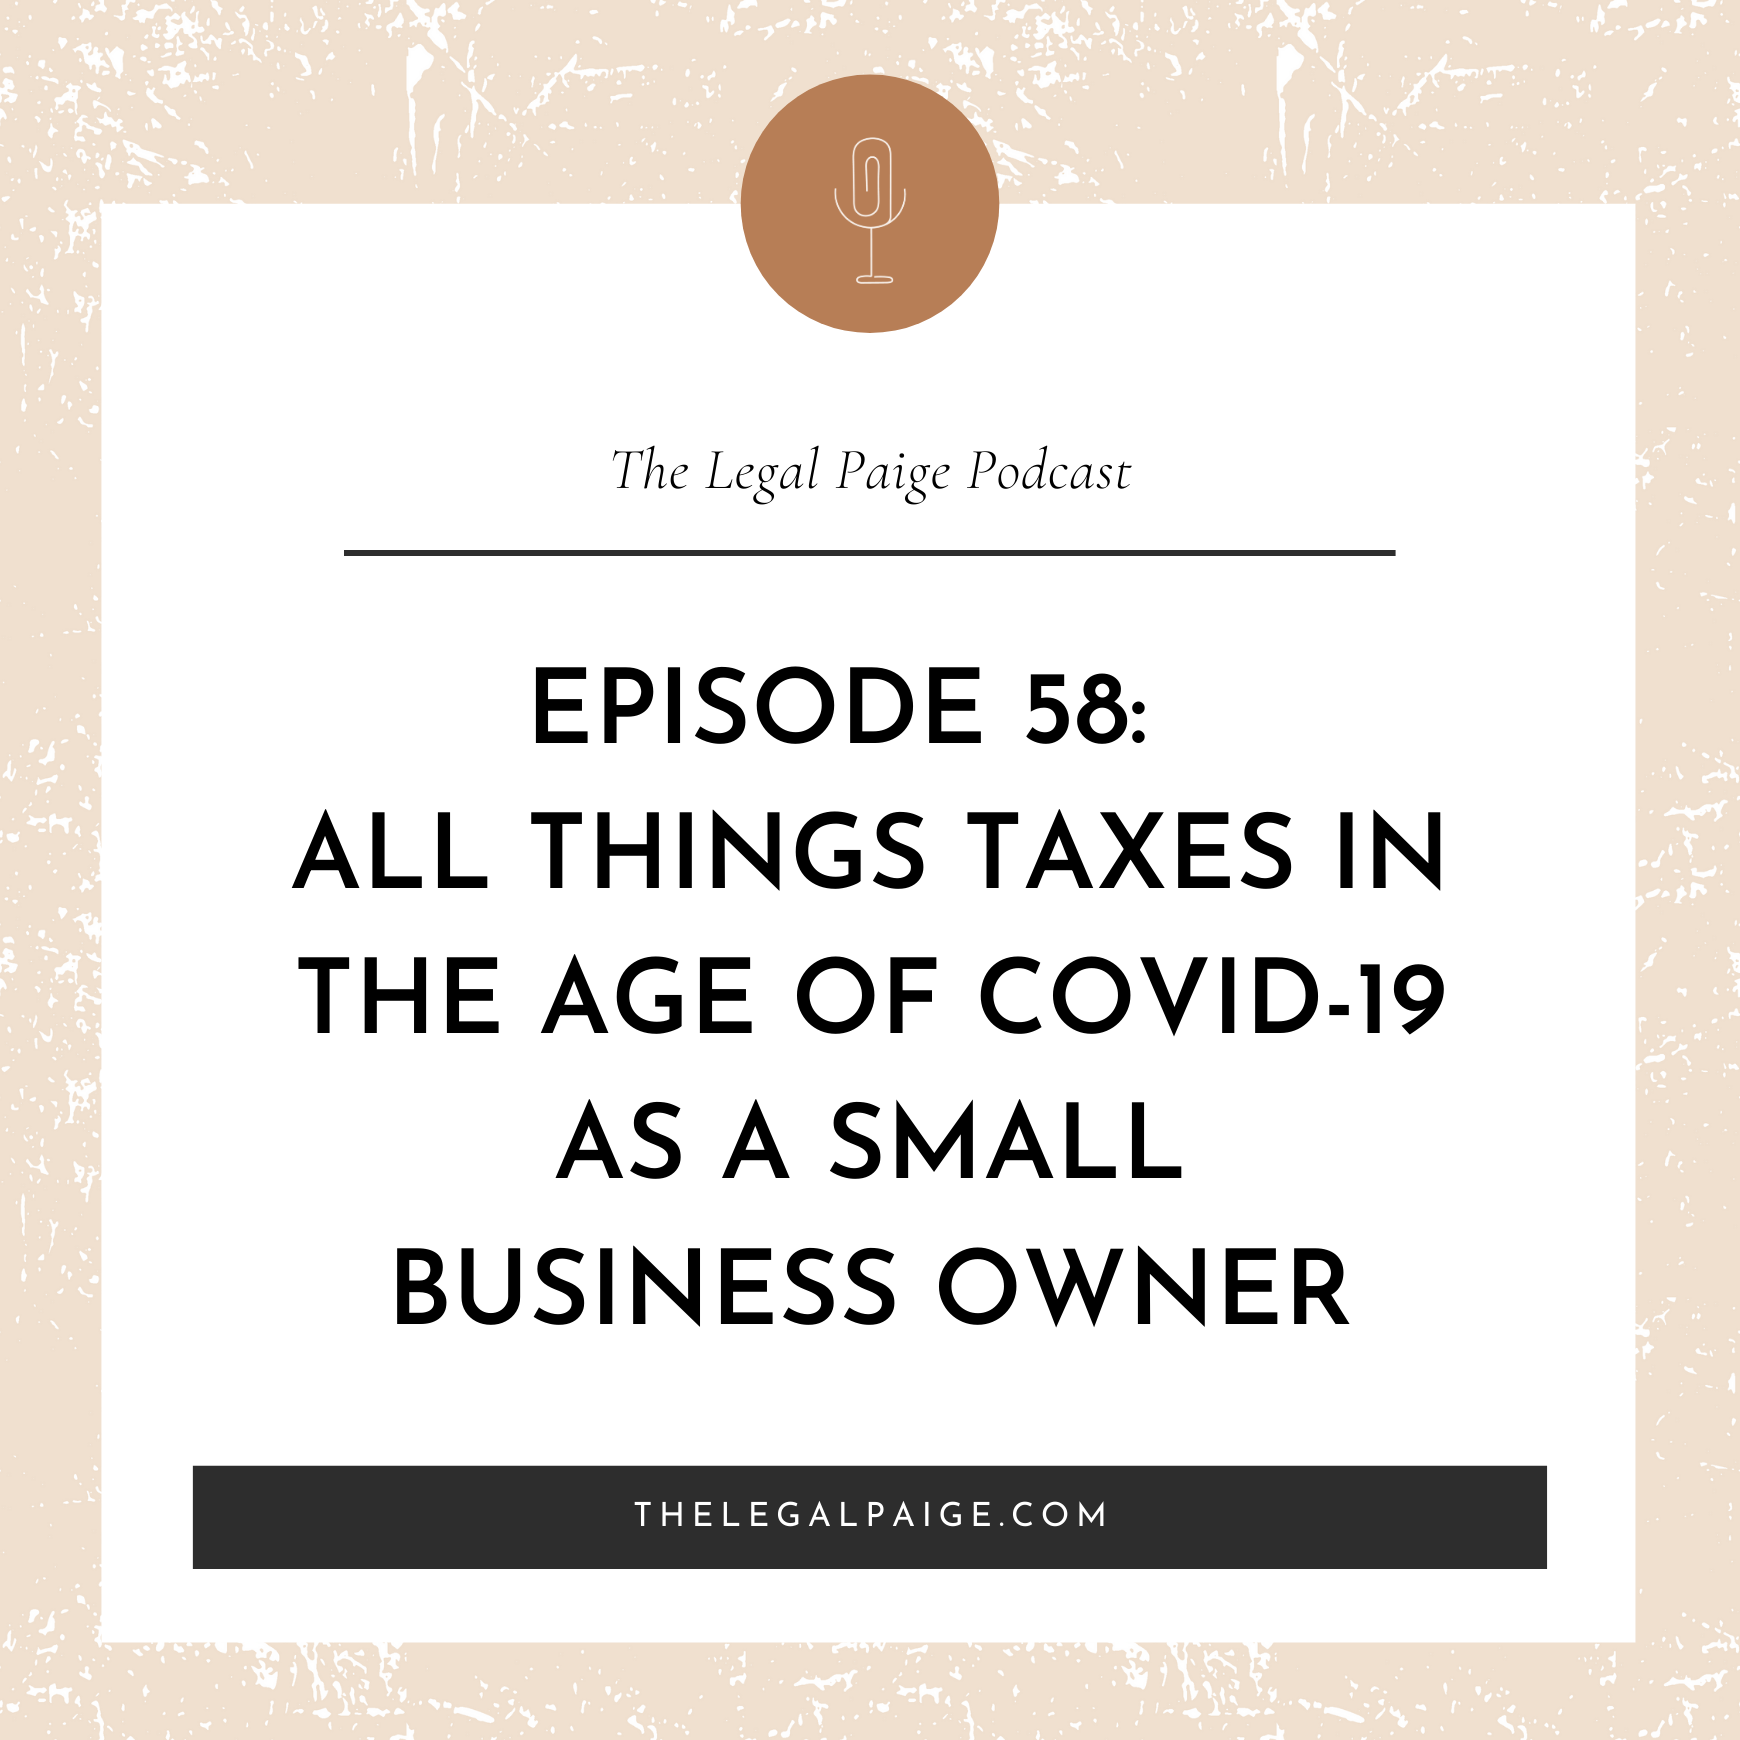 Ep 58:  All Things Taxes In The Age Of Covid-19 As A Small Business Owner